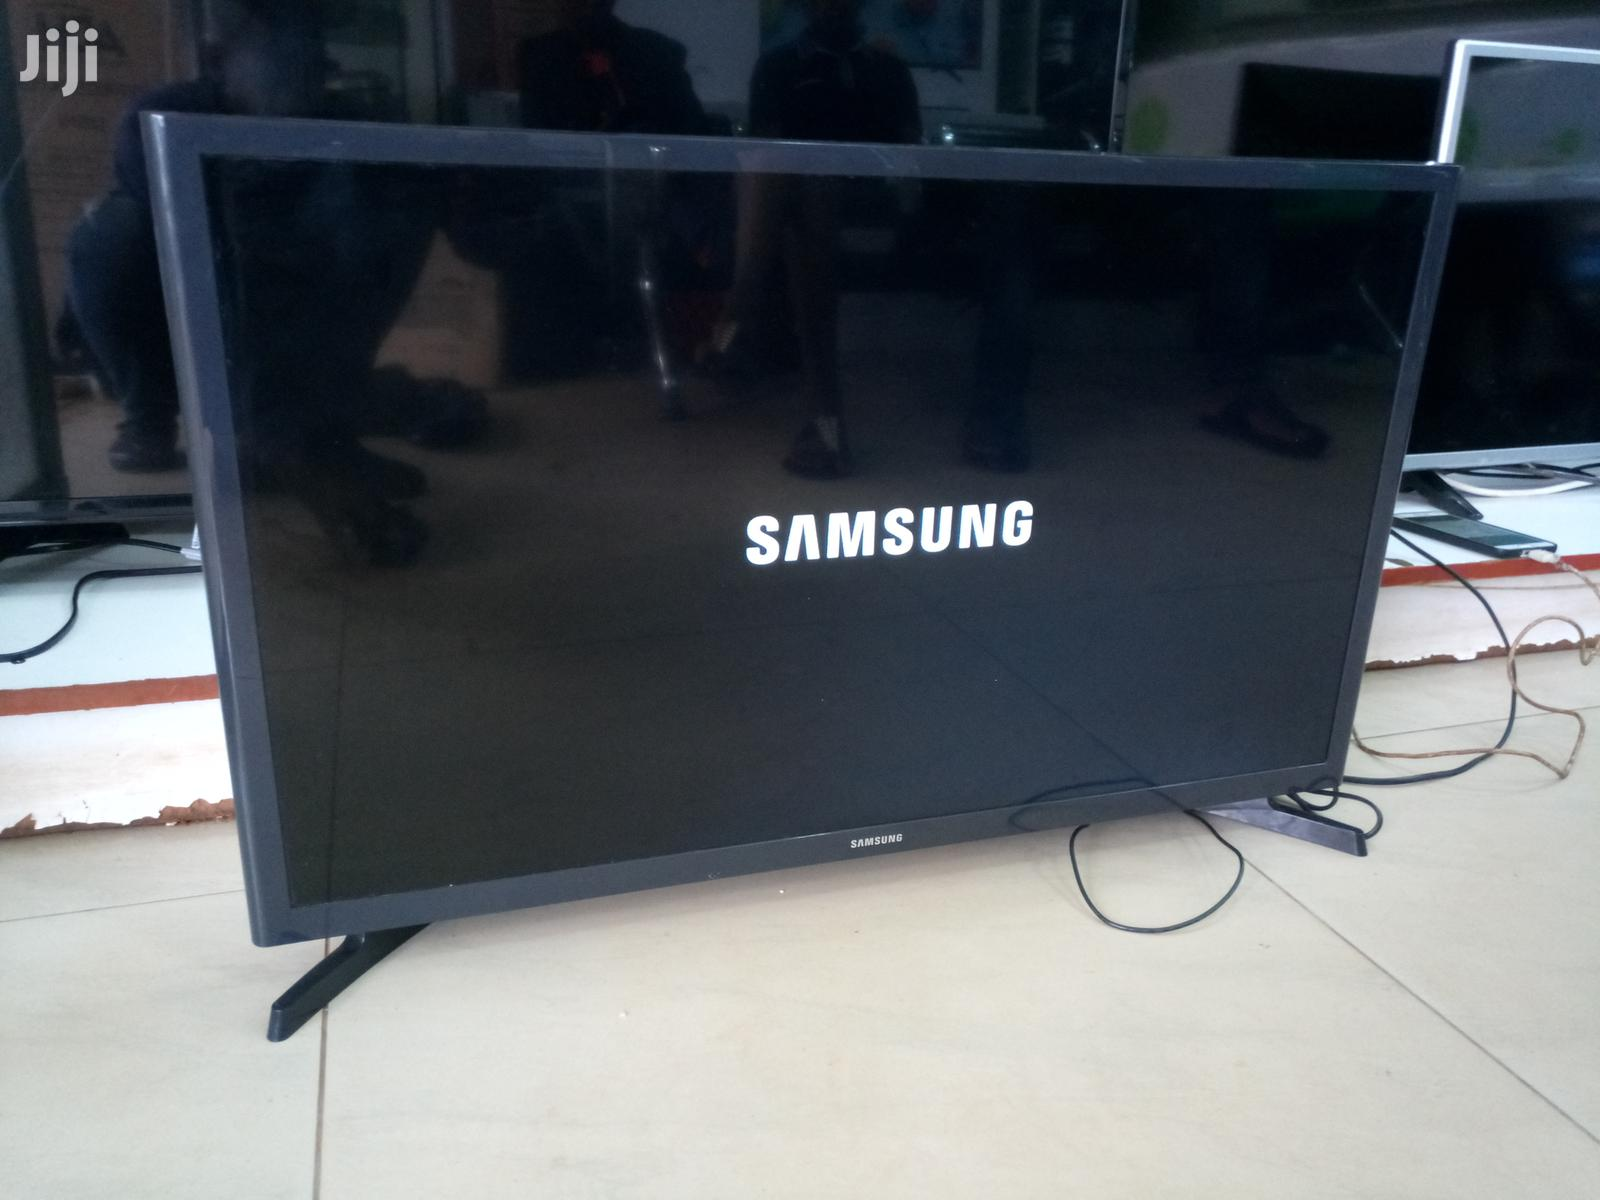 Samsung Flat Screen Digital TV 32 Inches | TV & DVD Equipment for sale in Kampala, Central Region, Uganda